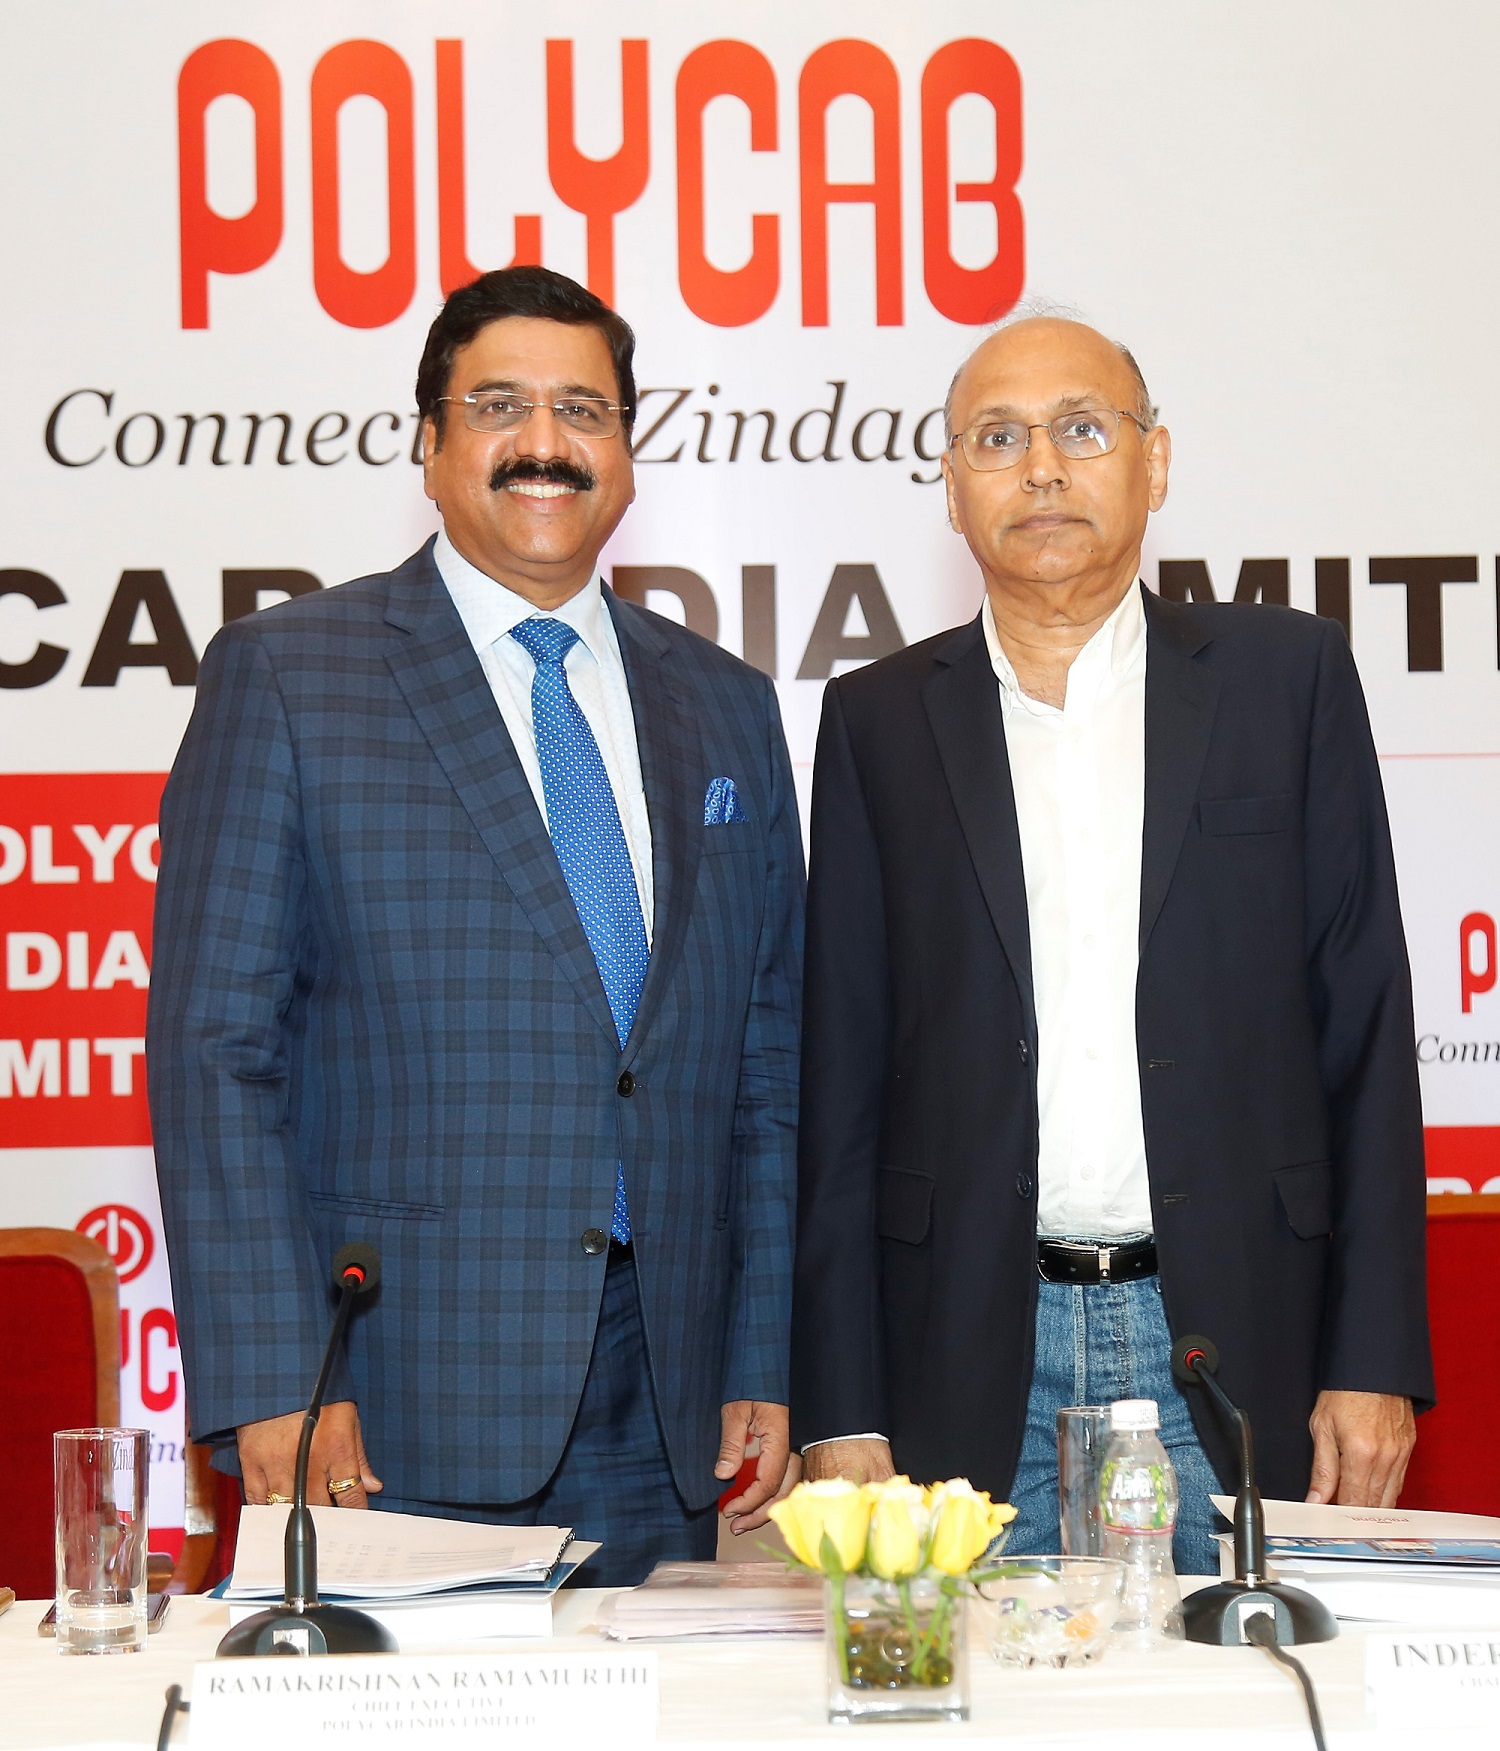 (L-R) – Mr. Ramakrishnan Ramamurthi (Chief Executive) and Mr. Inder T. Jaisinghani (Chairman and Managing Director) from Polycab India Ltd at the press conference in Mumbai to announce the company's forthcoming IPO.- Photo By Sachin Murdeshwar GPN News Network